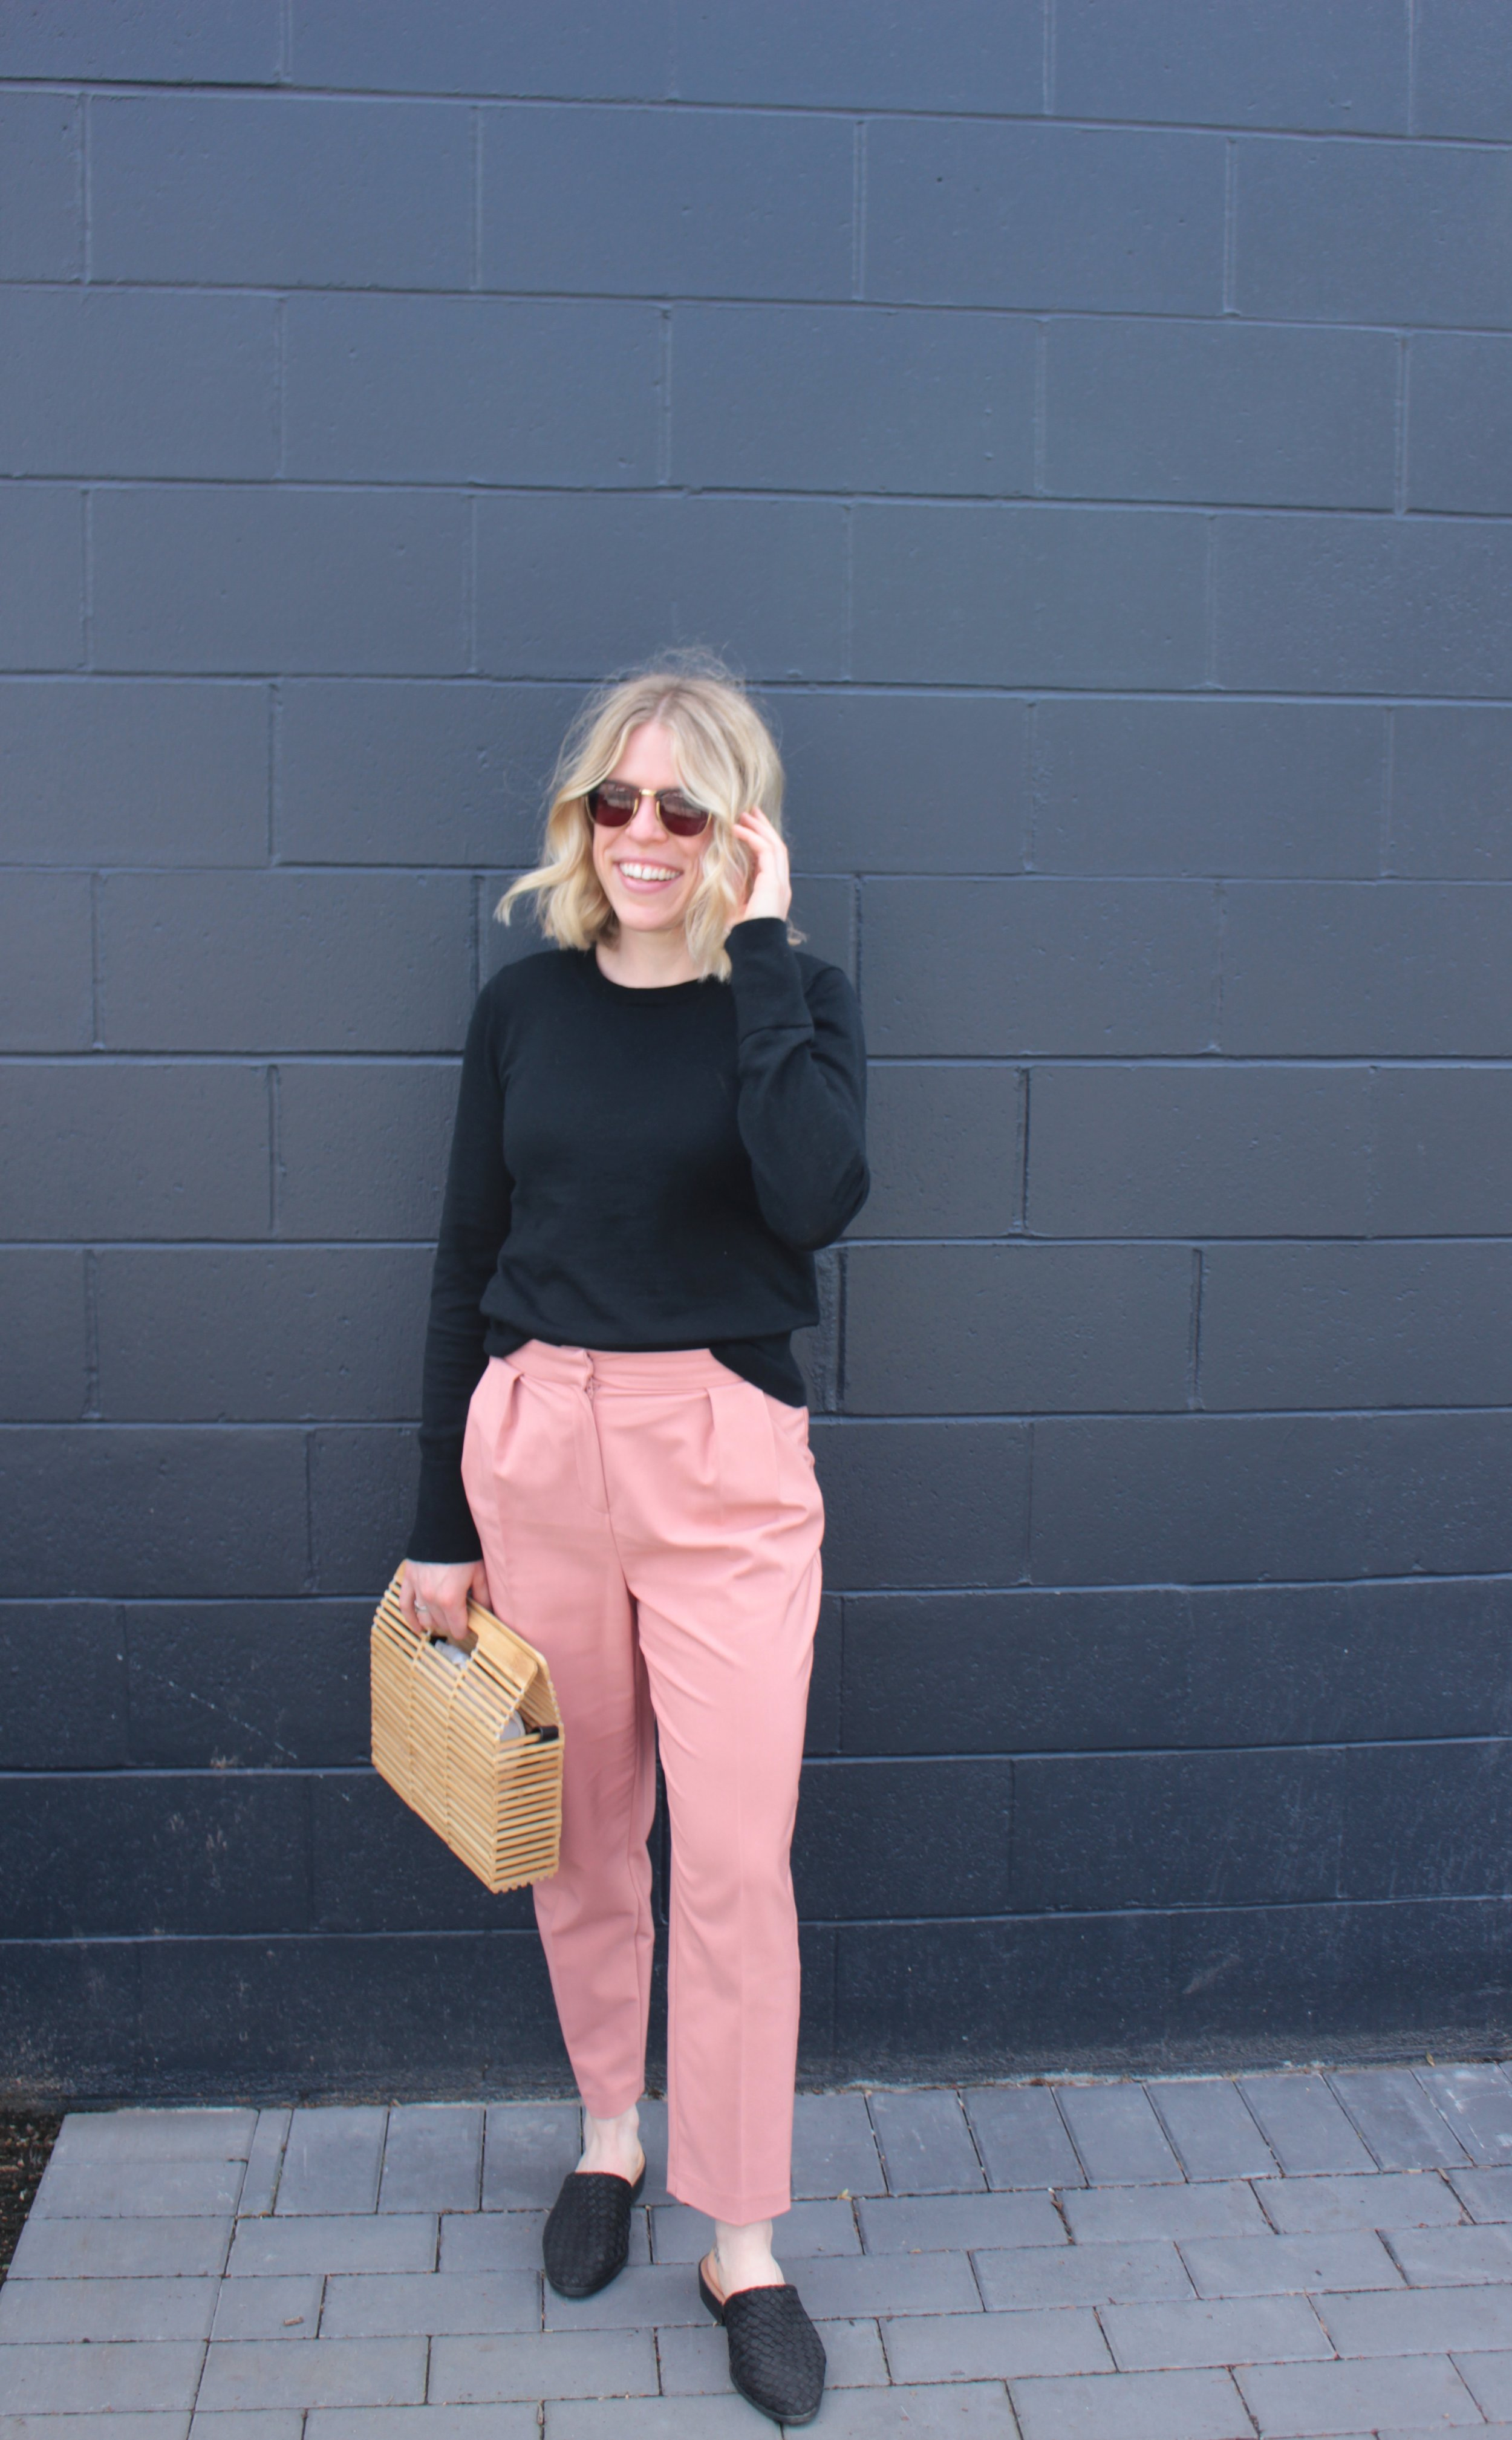 Wearing    GAP    Sweater,    Topshop    Trousers,    Marks & Spencer    Slides,    Topshop    Wooden Bag,    Ray Ban    Sunglasses